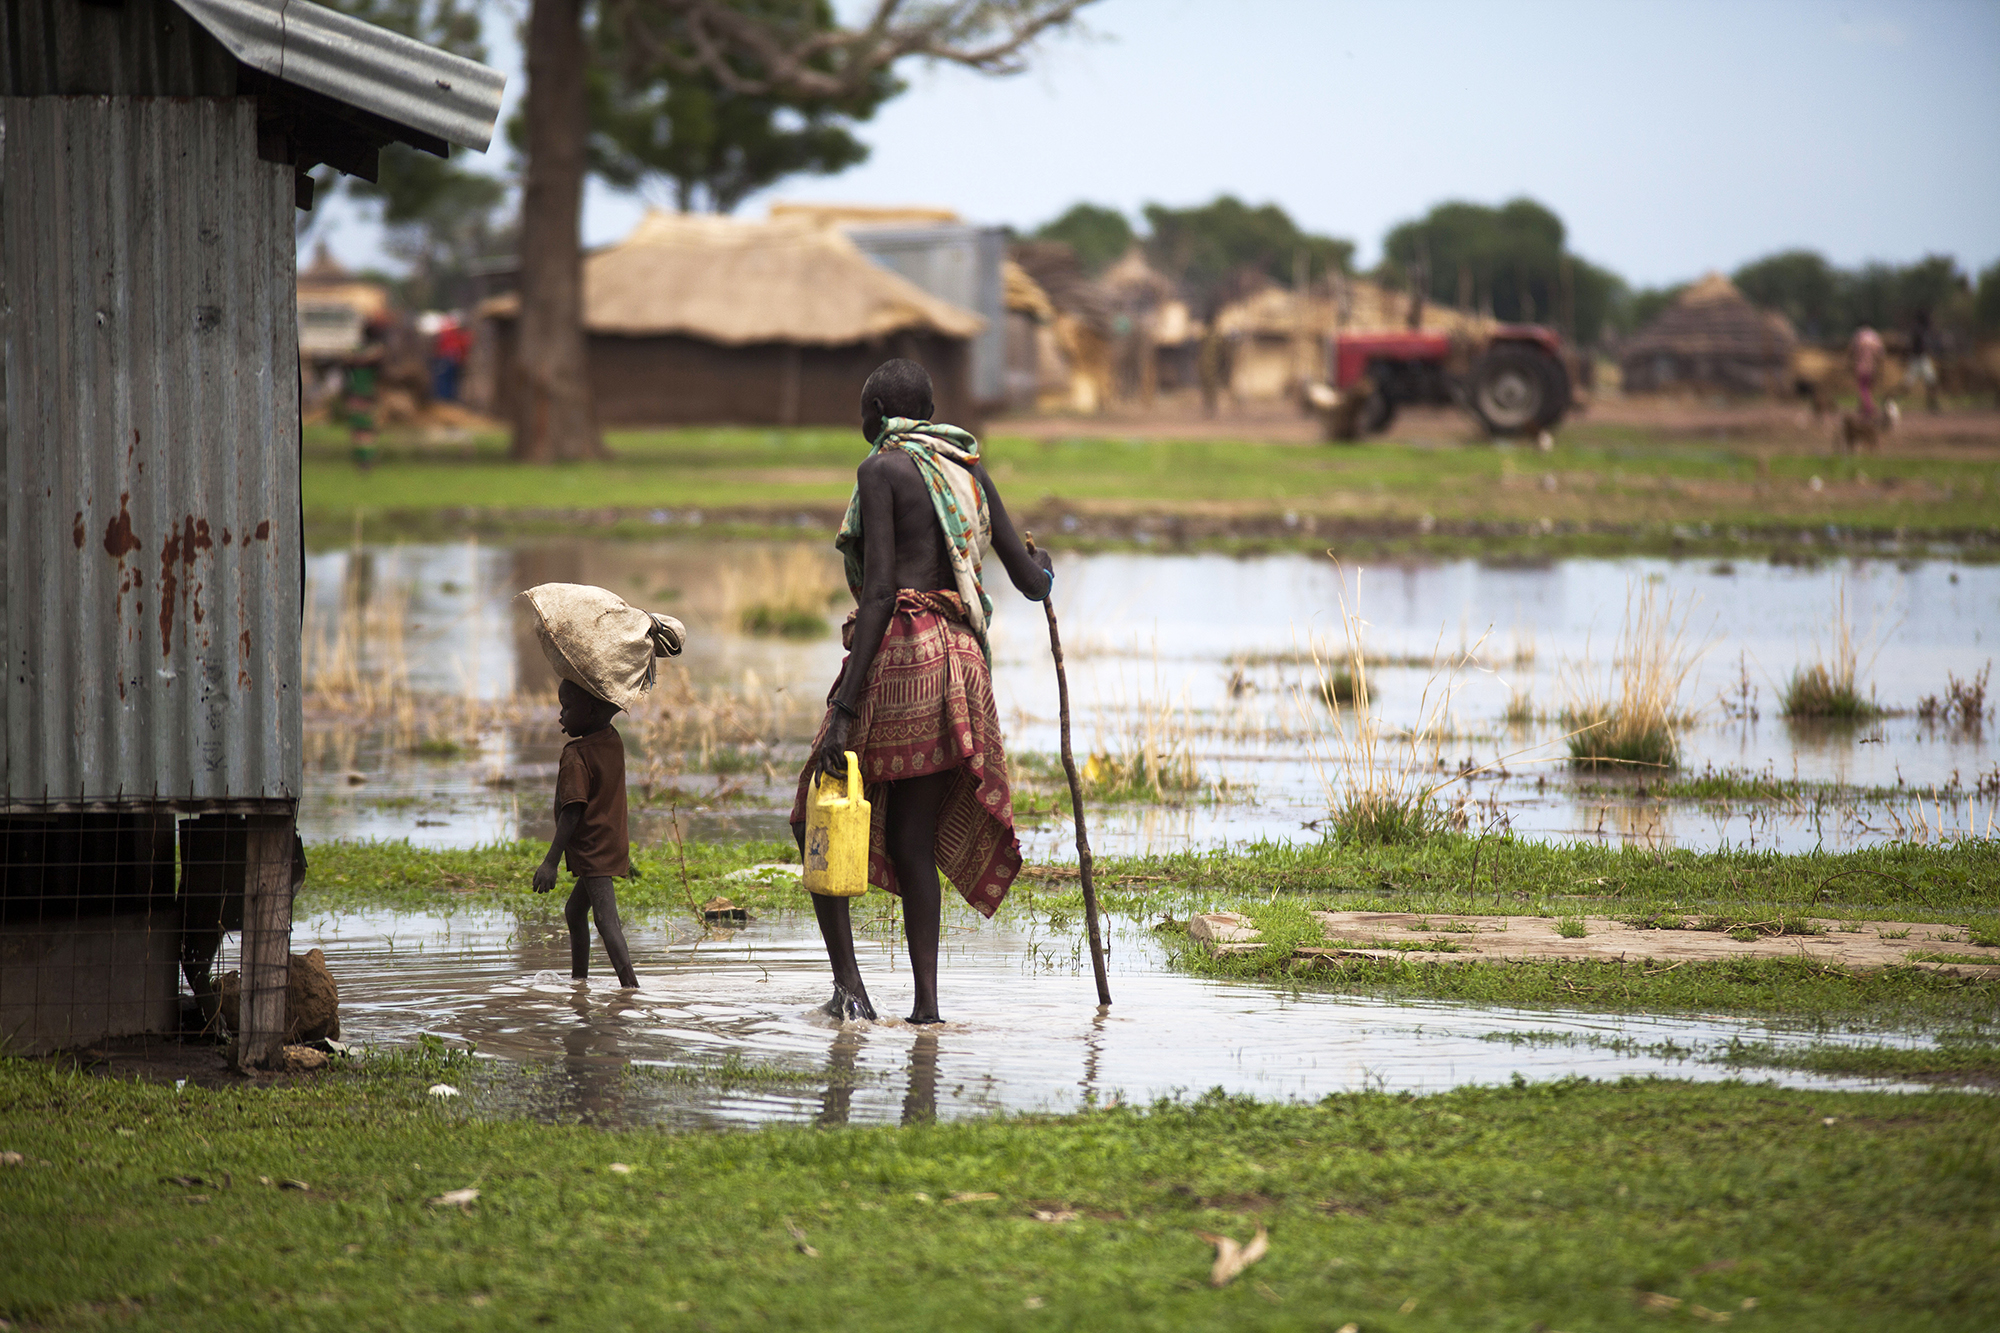 A woman with a boy walk in a flooded area in South Sudan